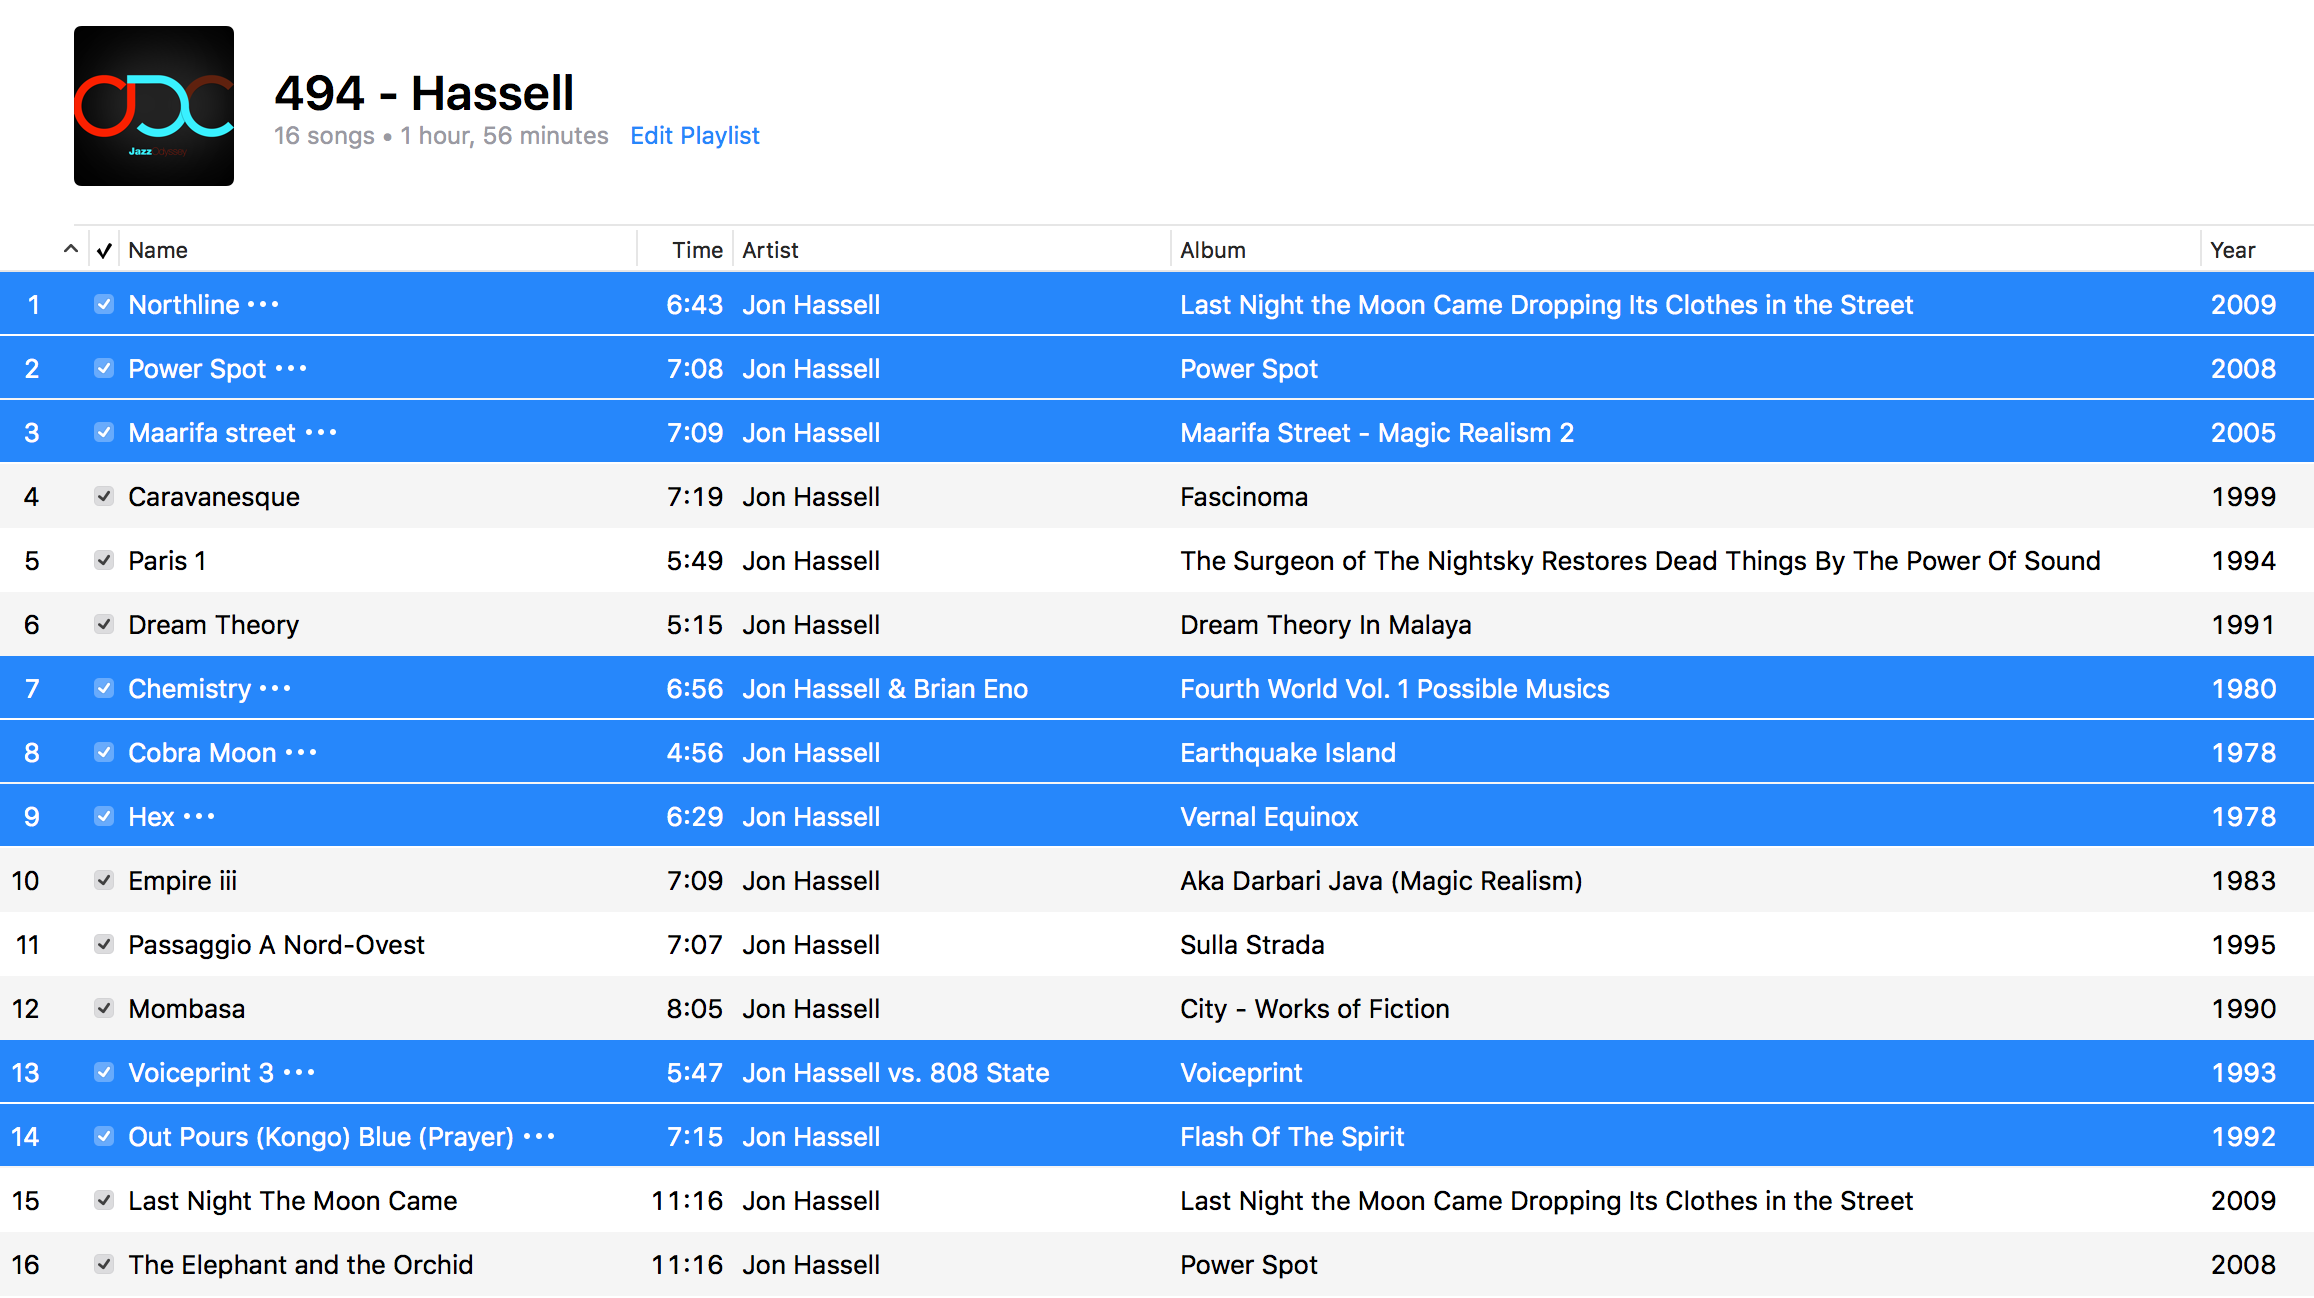 Jazz ODC #494 - Hassell - Playlist